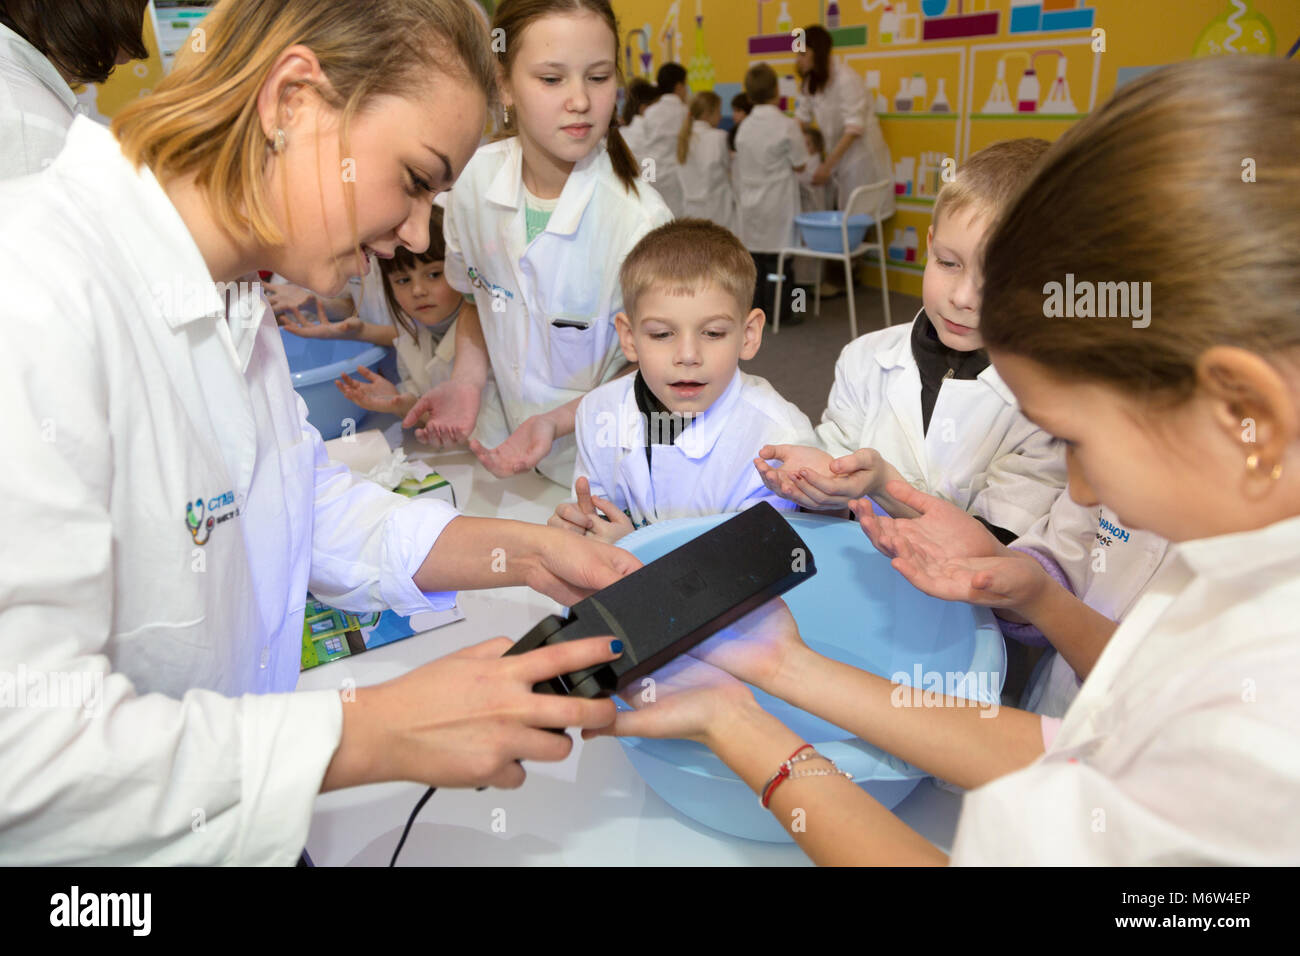 Doctor checks microbes in children's hands at the children's interactive exhibition 'Become a doctor - Stock Image